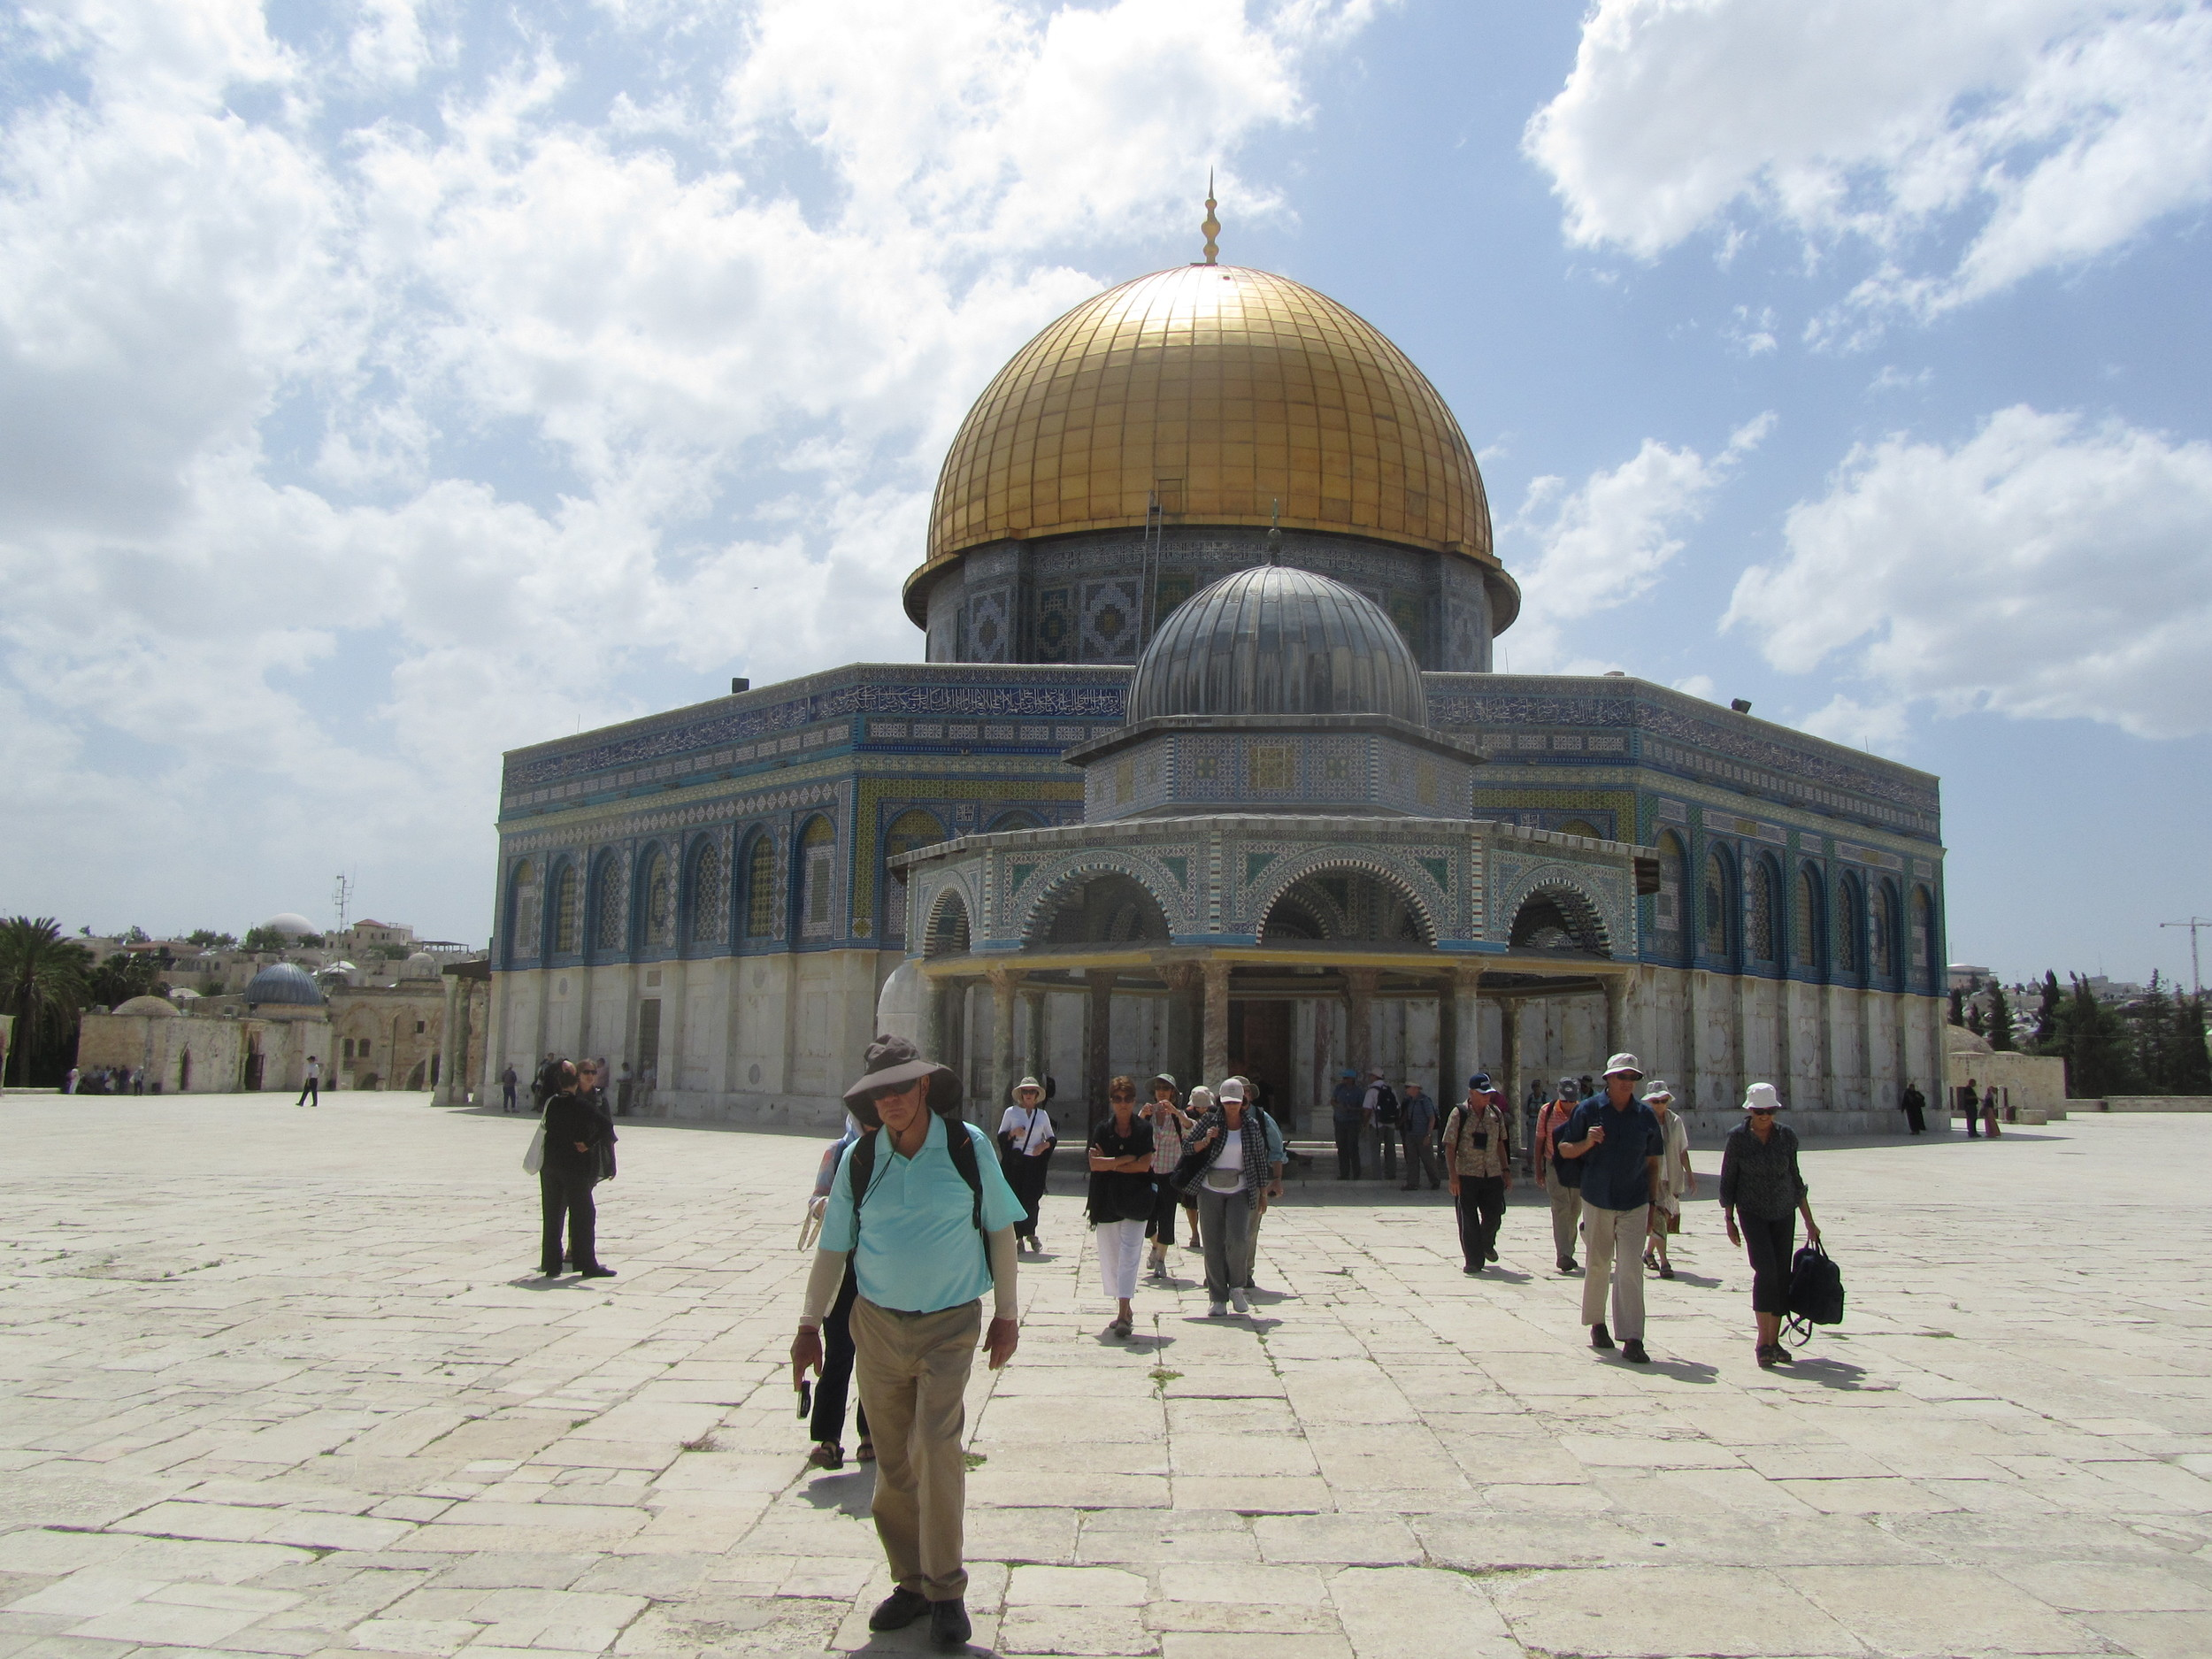 The Seventh Century Dome of the Rock